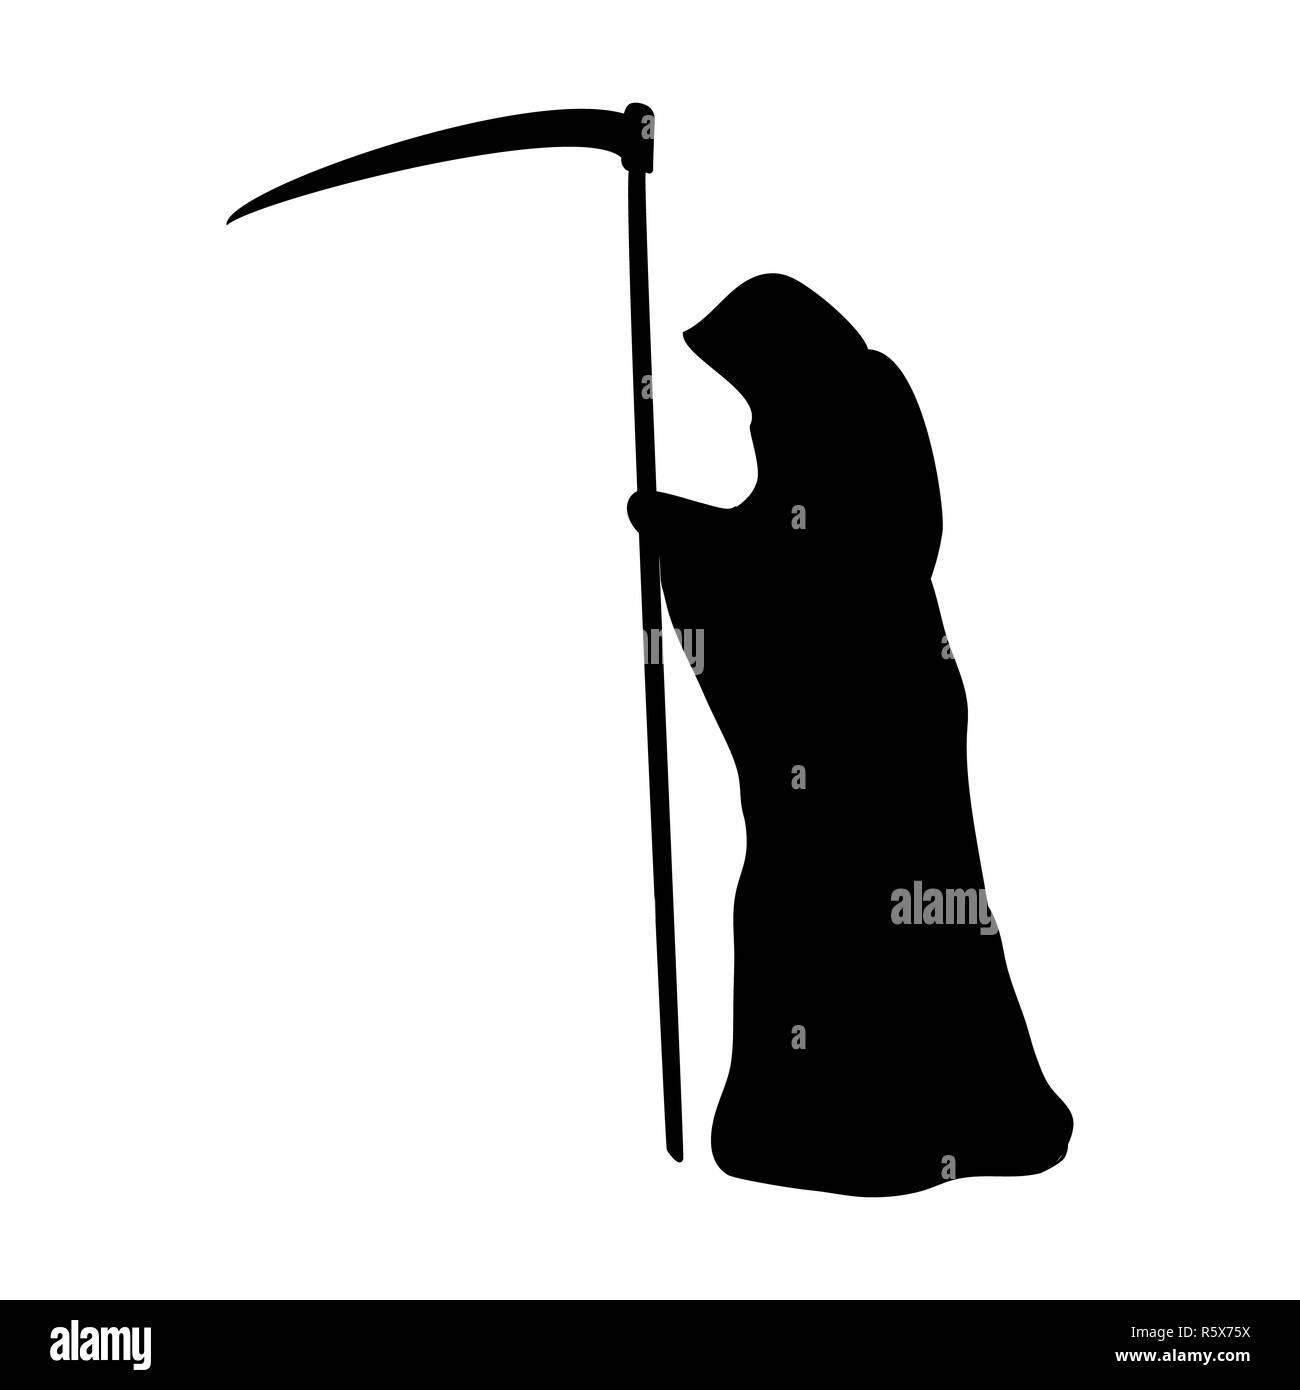 Death silhouette scary monster fantasy - Stock Image